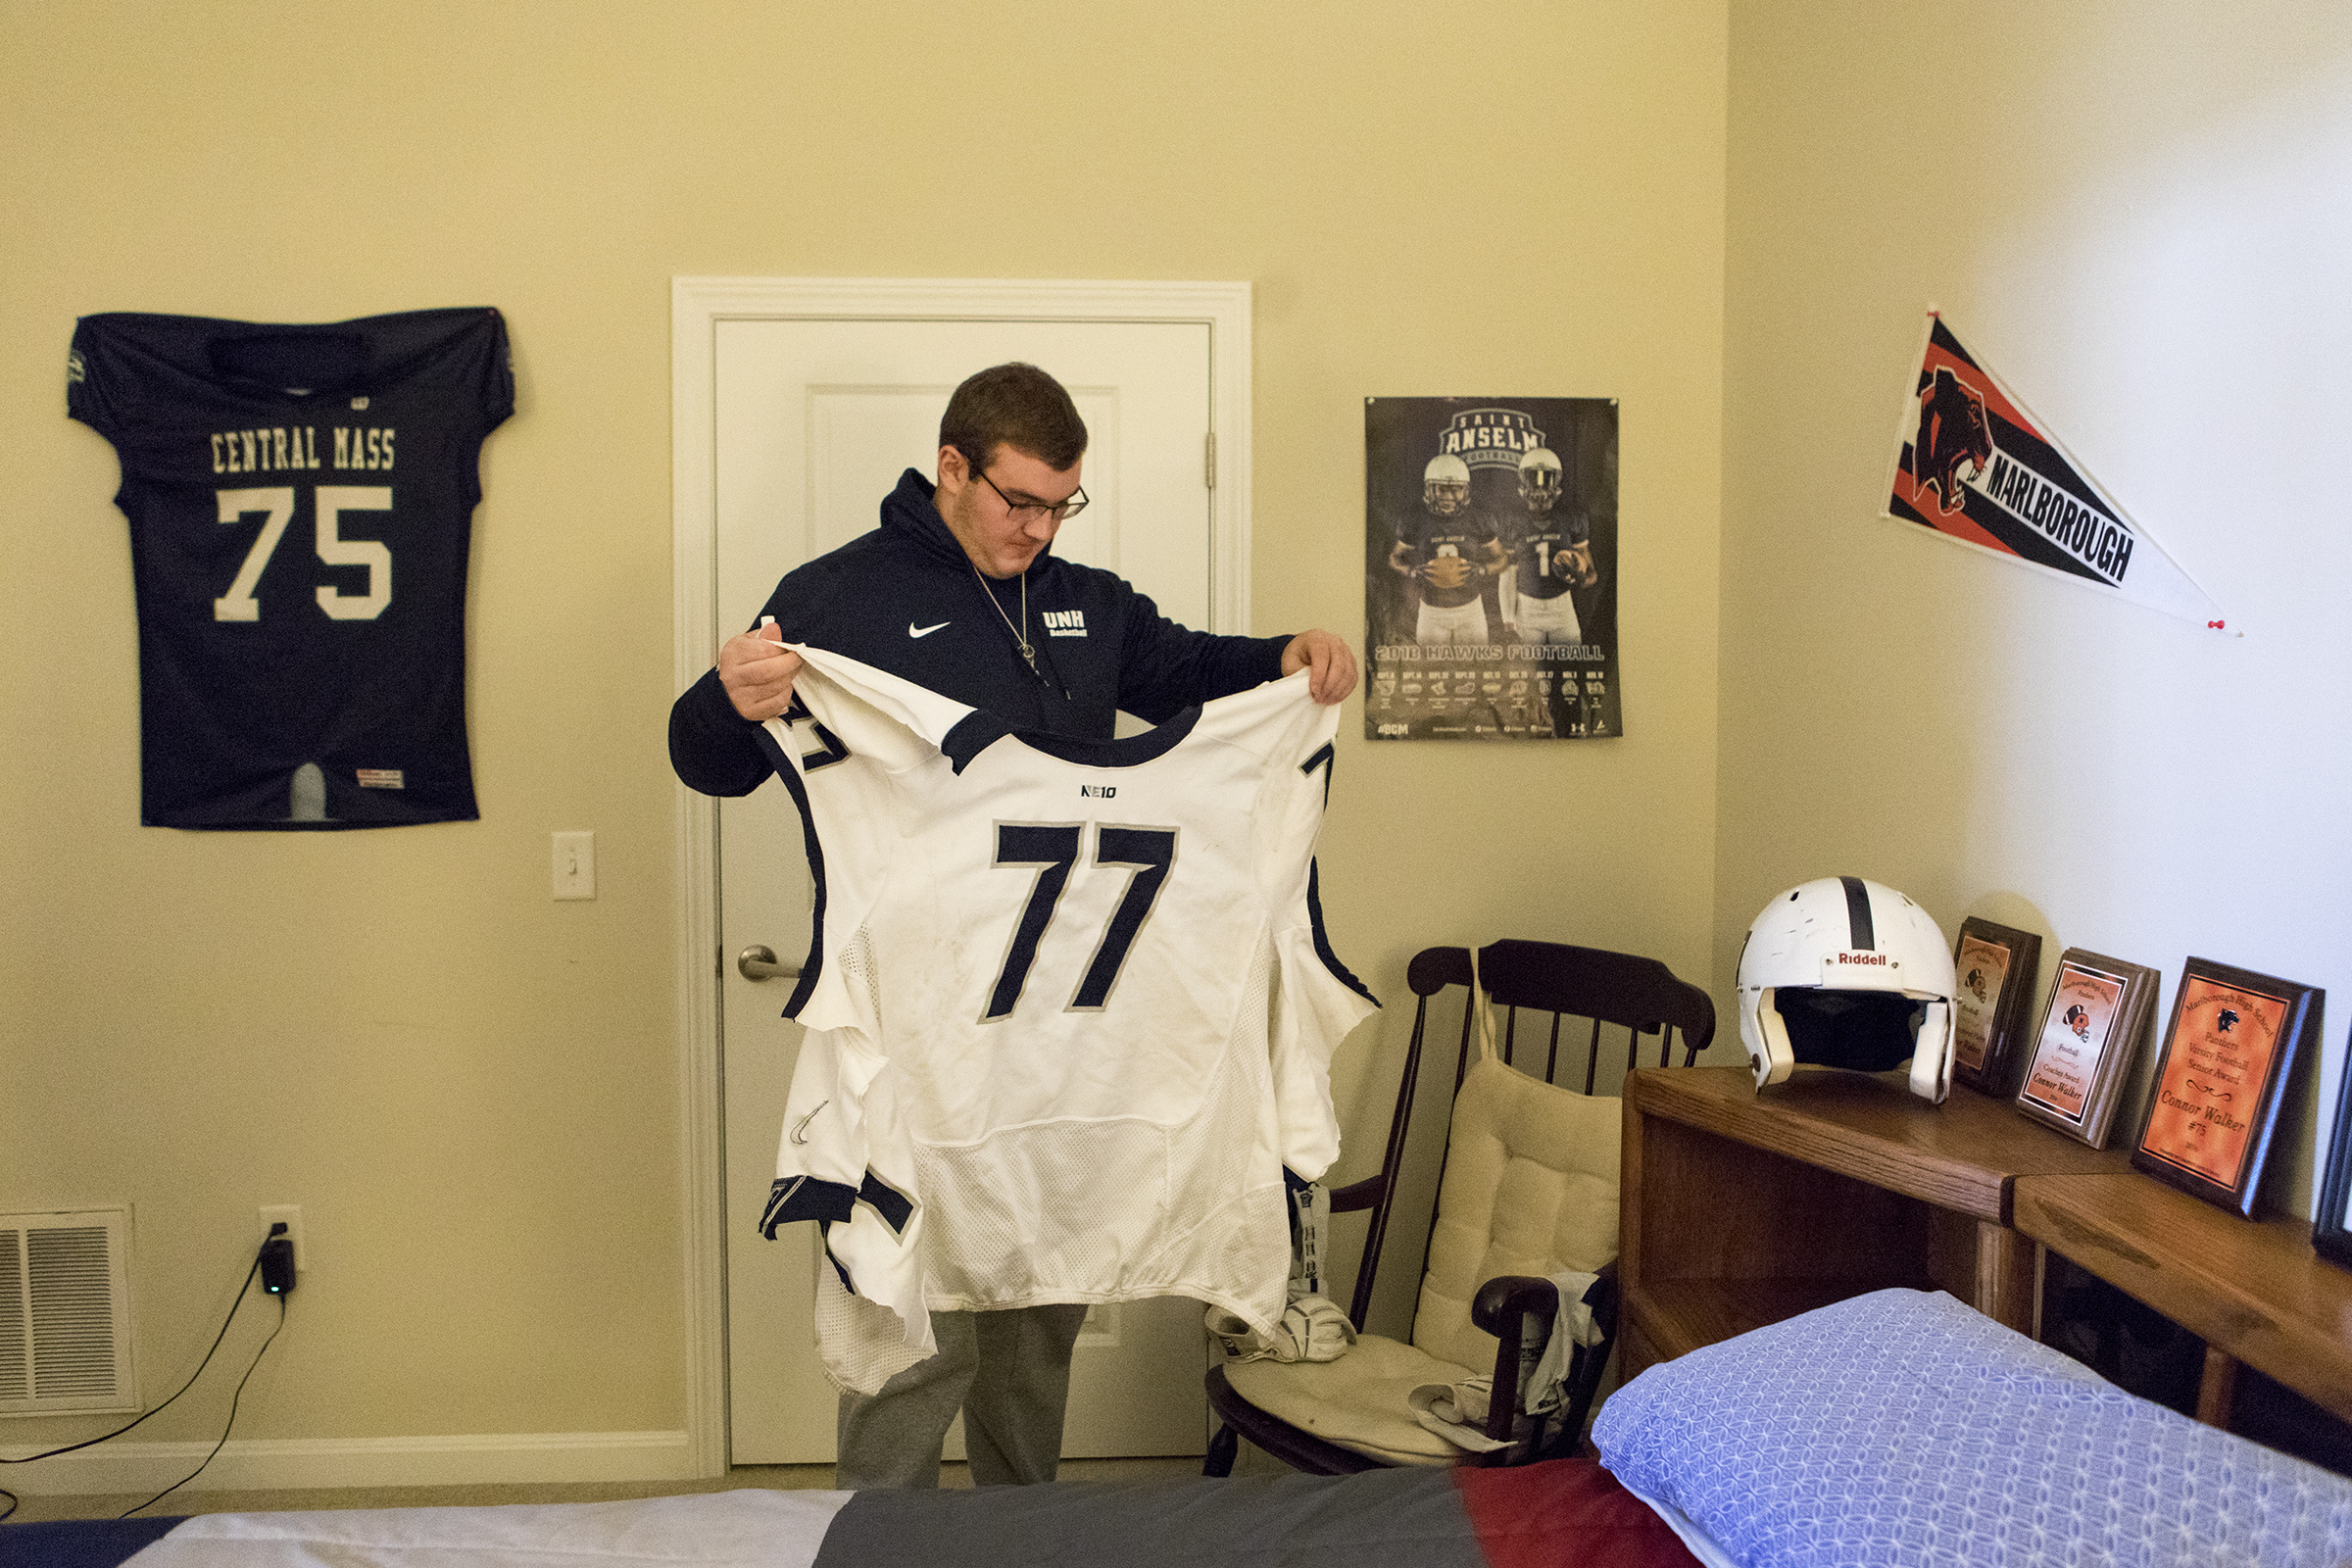 For the first time, Connor looks at the Saint Anselm College football jersey that had to be cut off of him when he sustained his spinal cord injury in his room at his family home in Marlborough on Oct. 25, 2018.